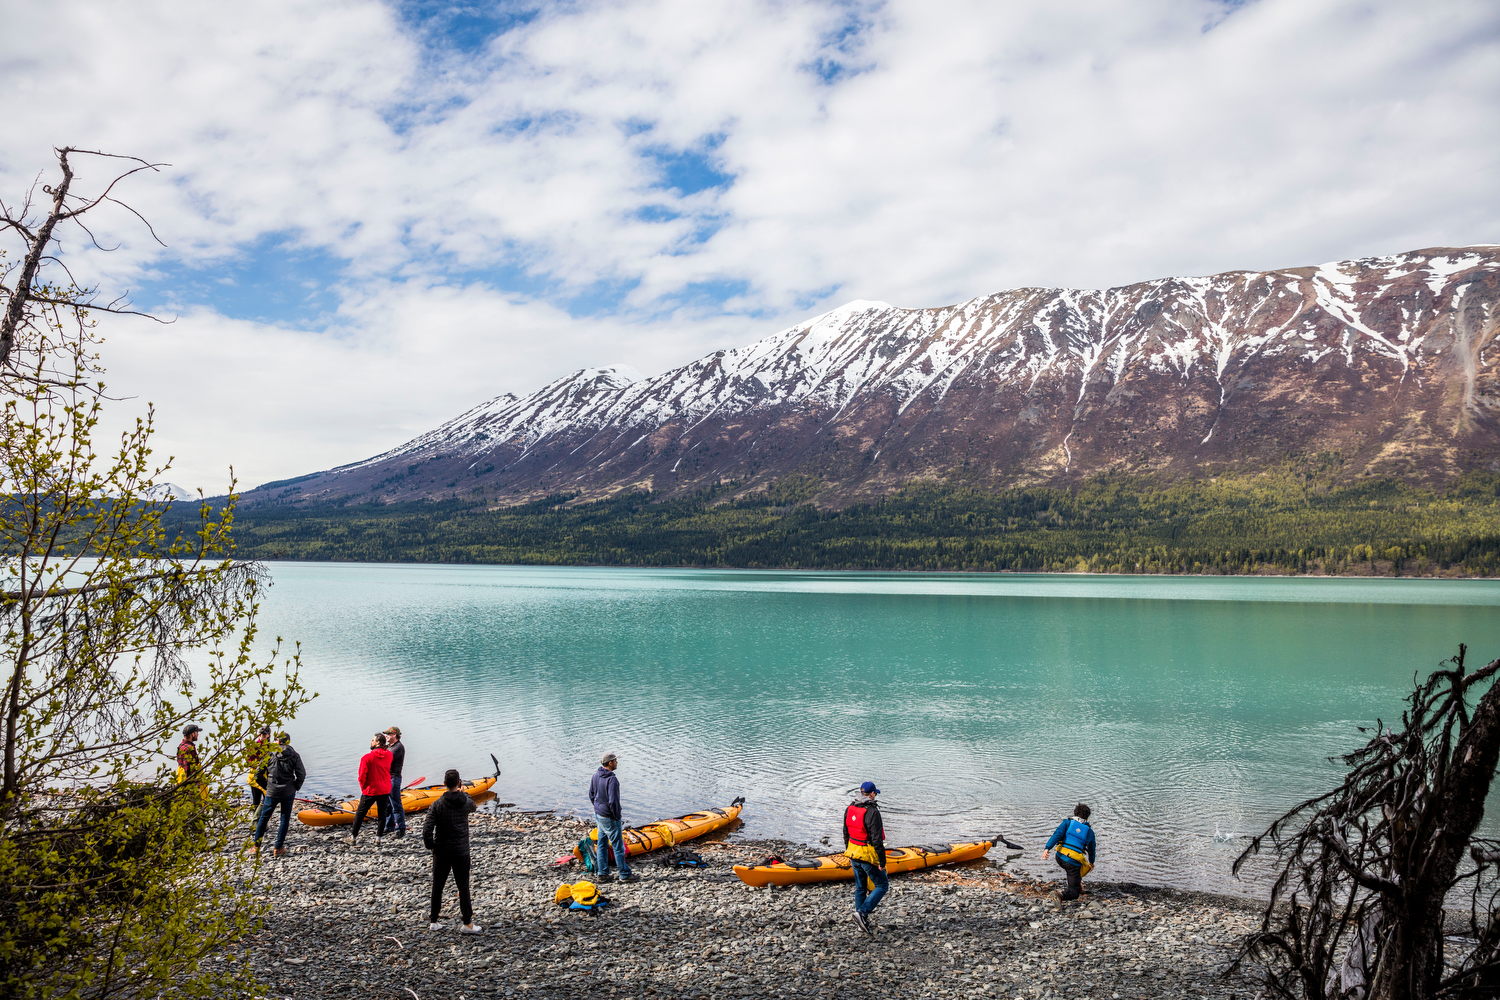 20180527_Alaska Kenai Lake Kayaking_01560.JPG